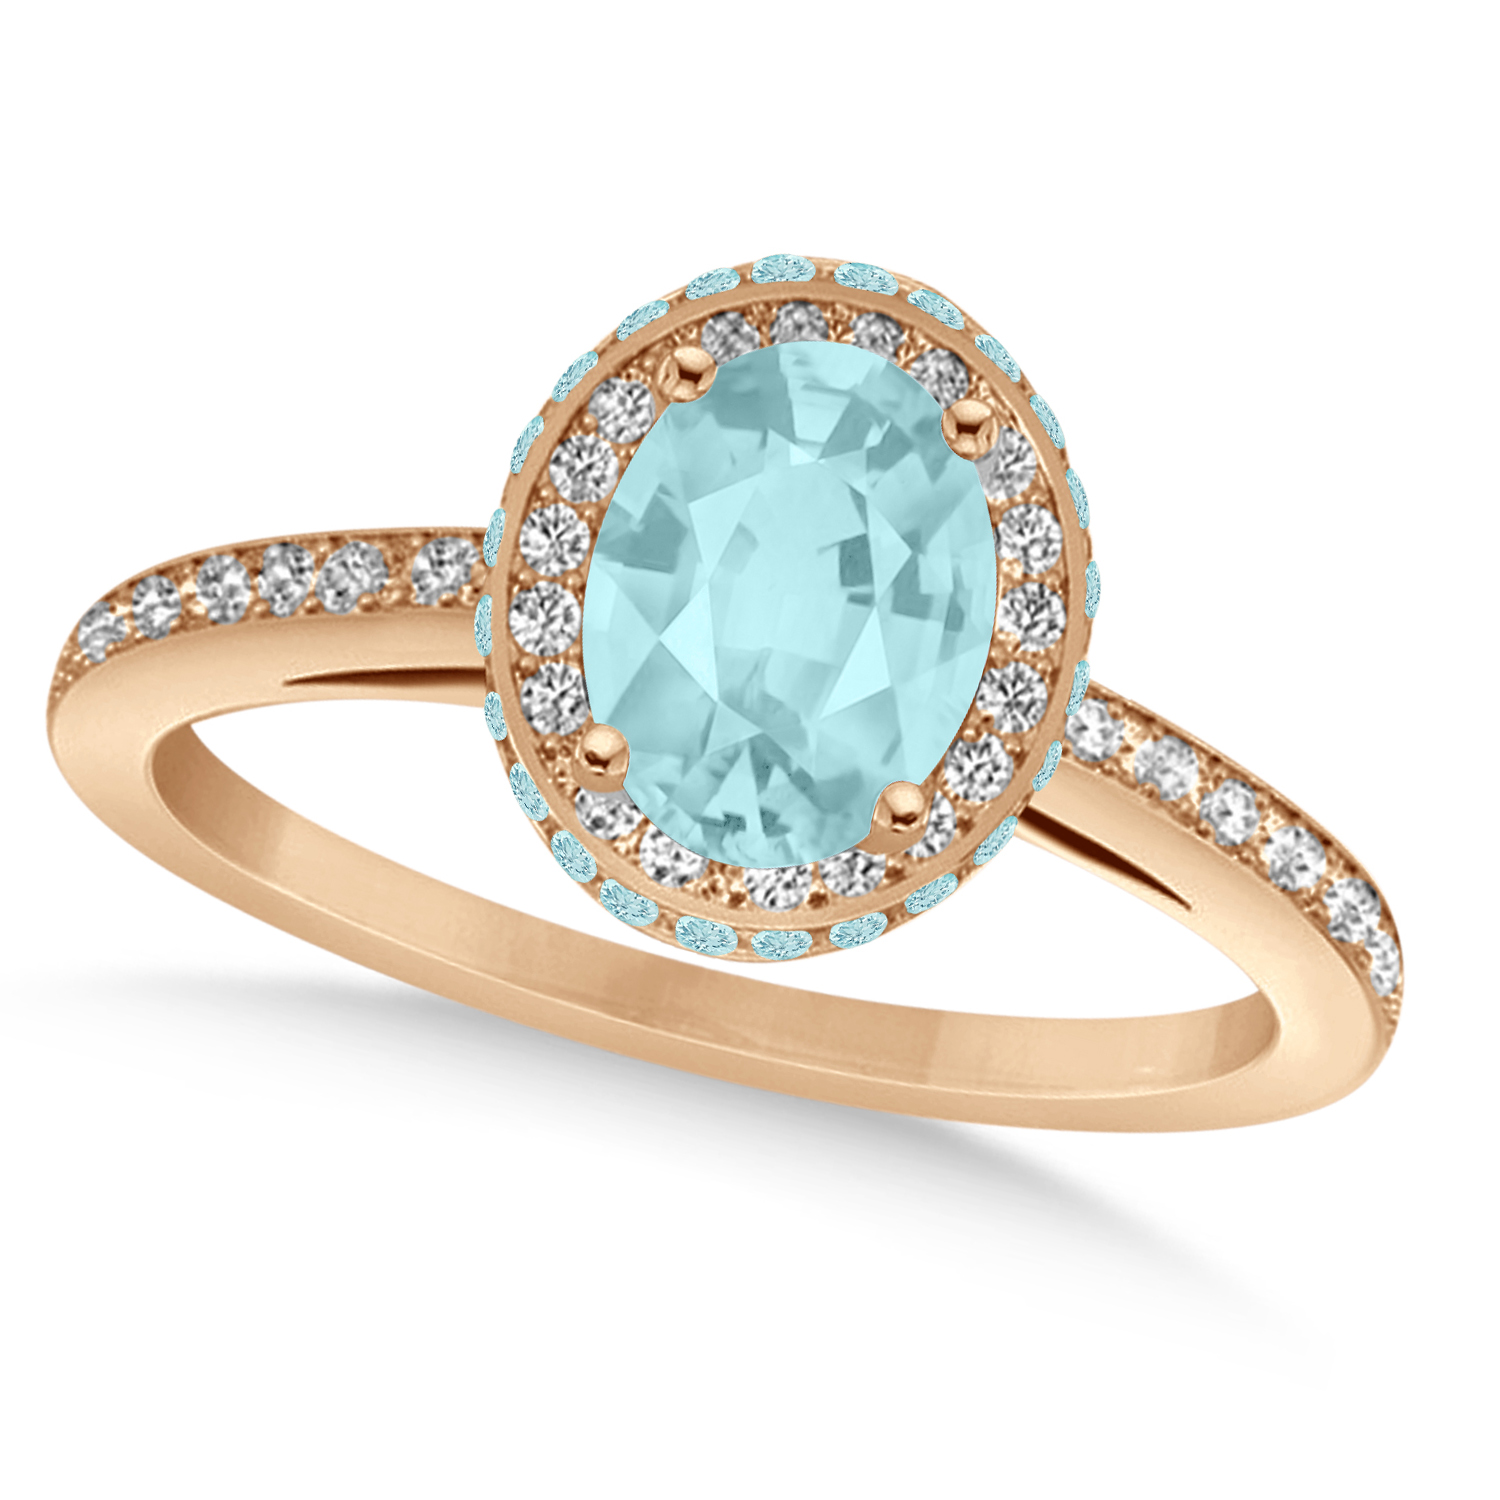 Oval Aquamarine & Diamond Halo Engagement Ring 14k Rose